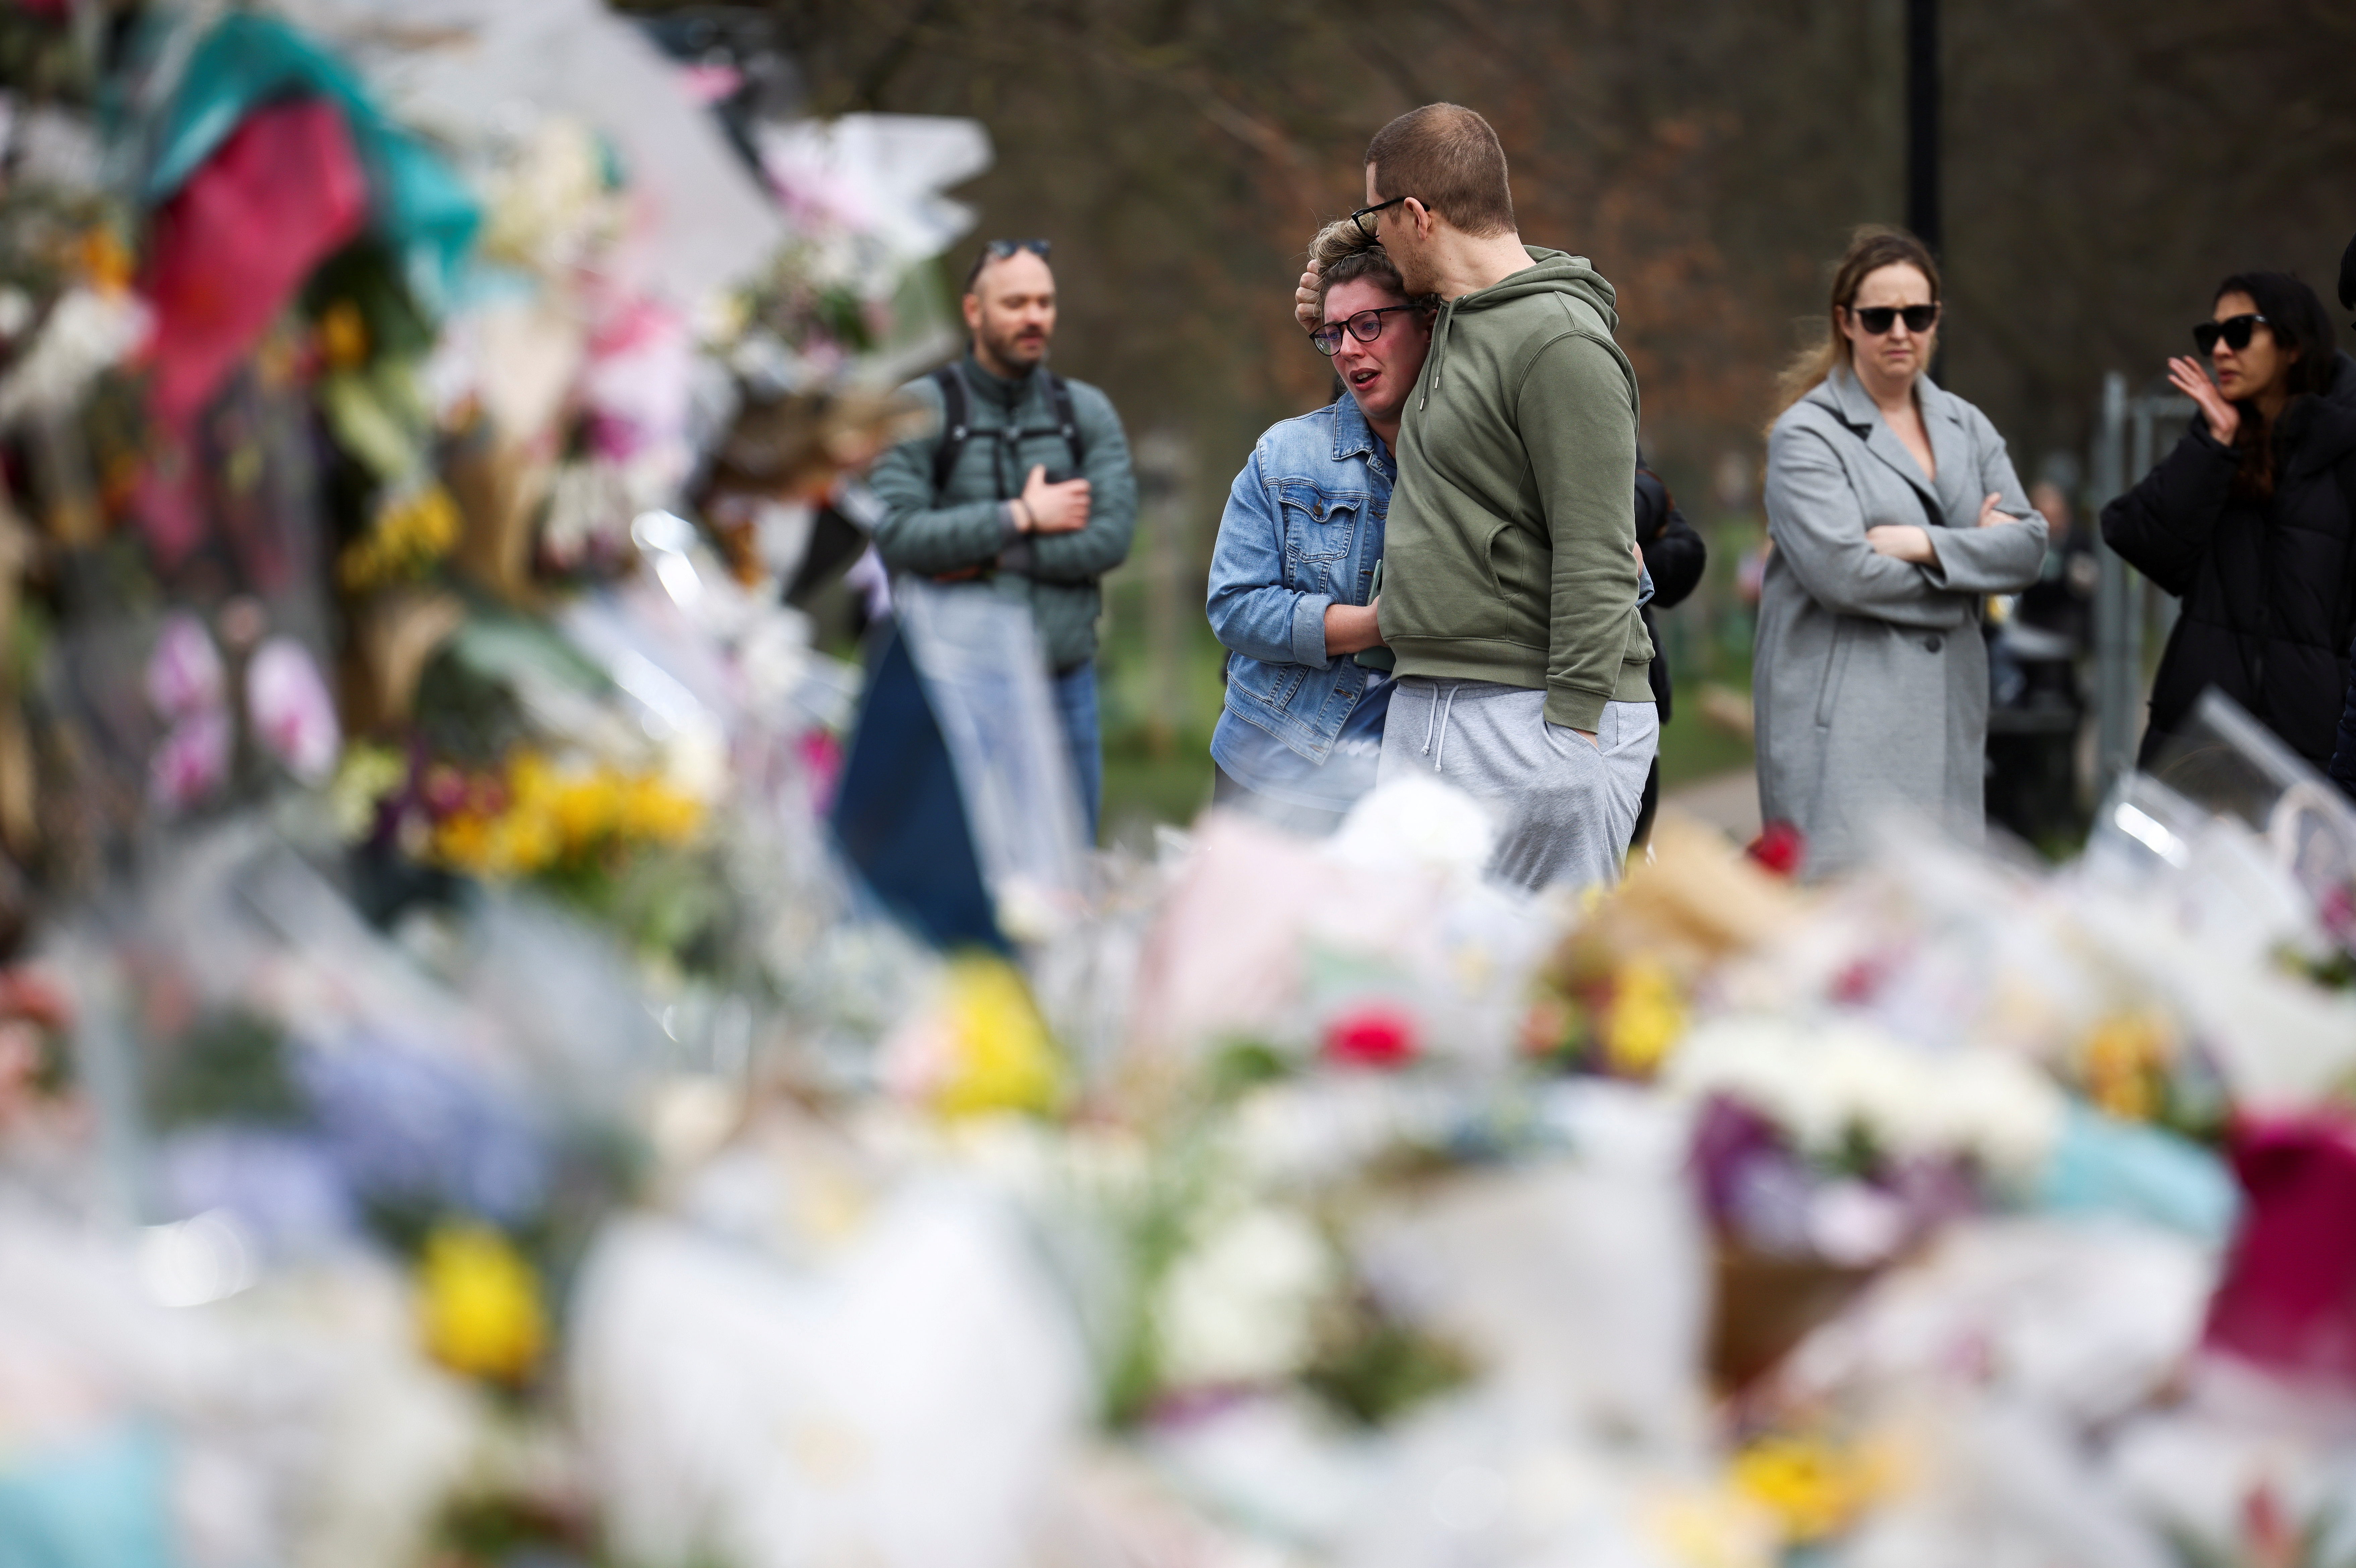 People observe a memorial site at the Clapham Common Bandstand, following the kidnapping and murder of Sarah Everard, in London, Britain, March 21, 2021. REUTERS/Henry Nicholls/File Photo